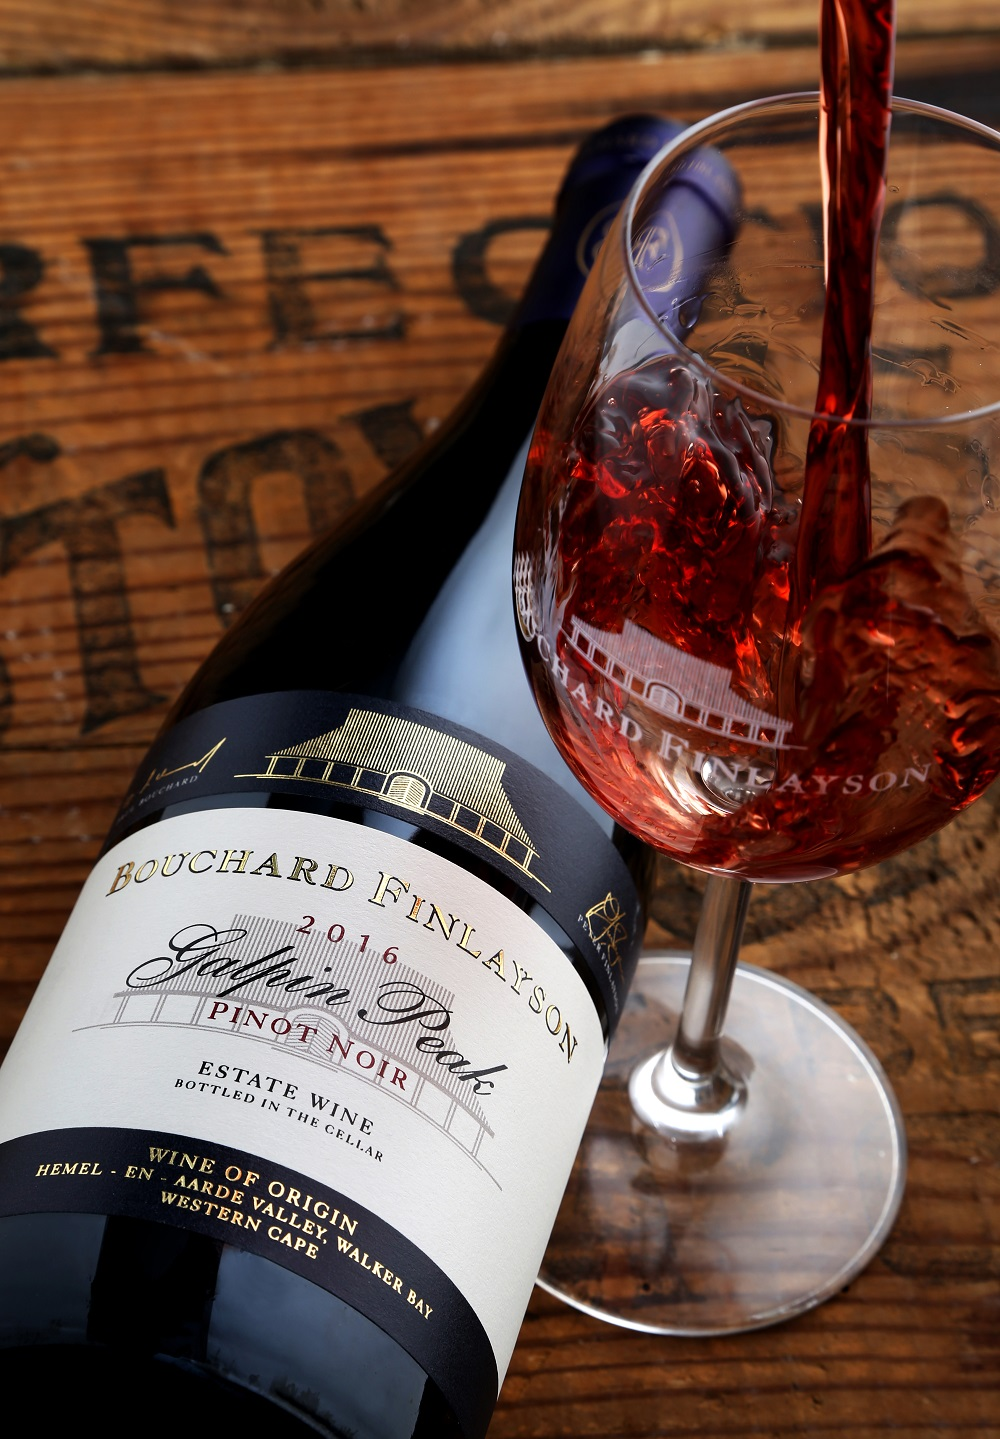 Bouchard Finlayson Rated 'Best Pinot Noir' in 2018 SAWi Awards photo